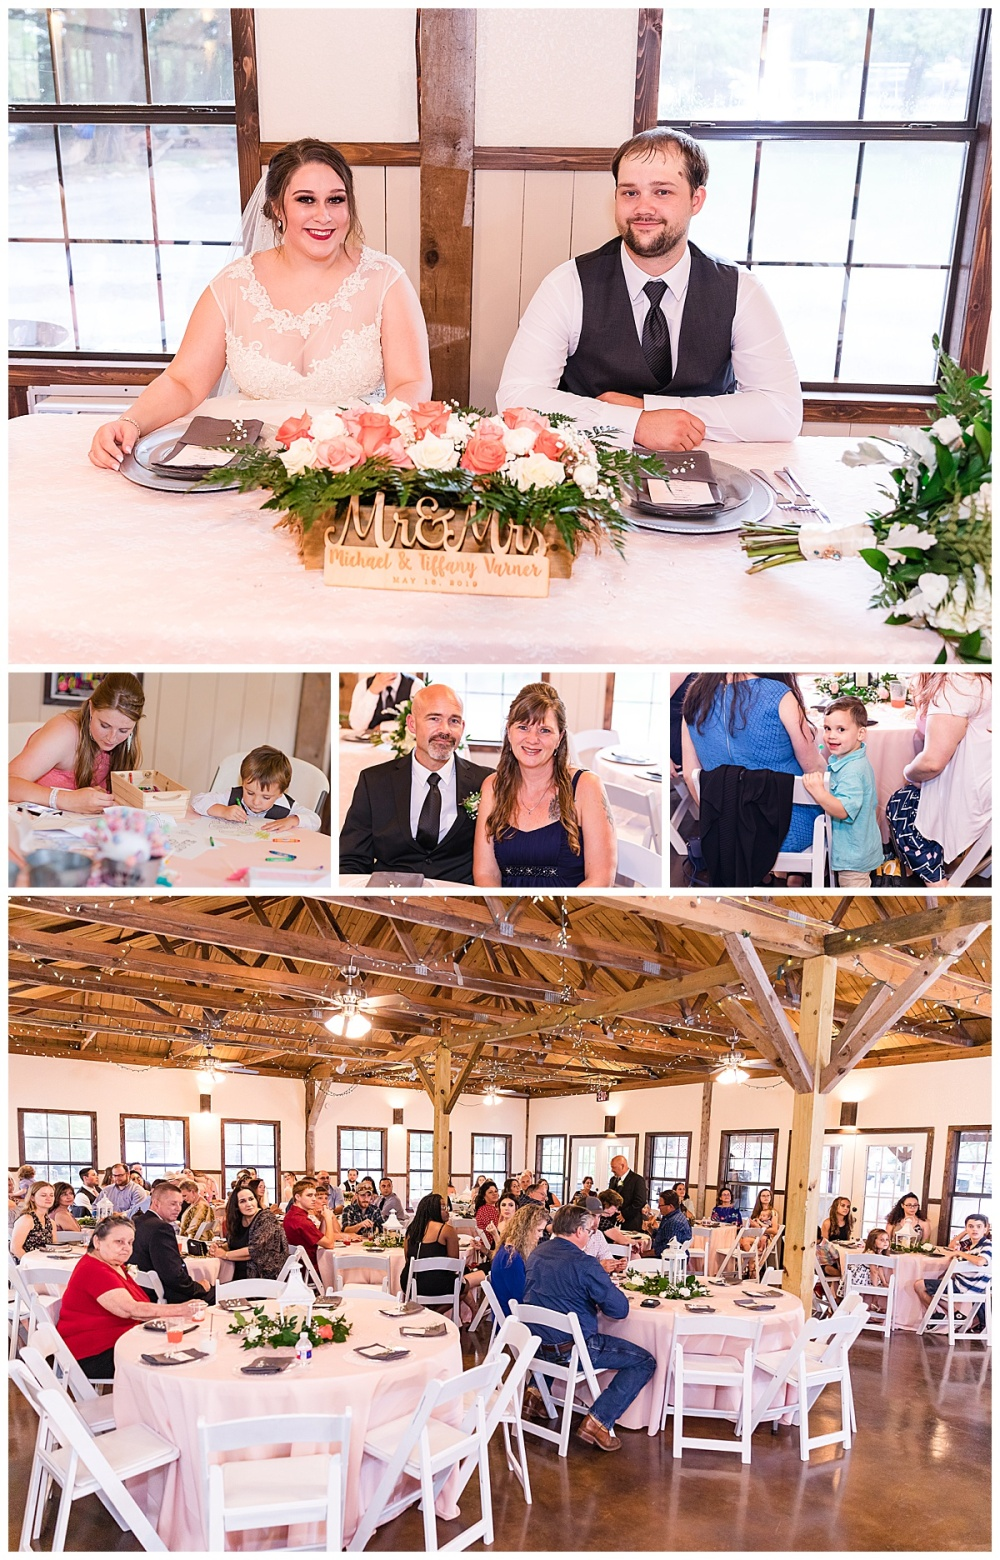 Michael-Tiffany-Wedding-New-Braunfels-Texas-Canyon-Lake-Cabins-and-Cottages-Carly-Barton-Photography_0043.jpg